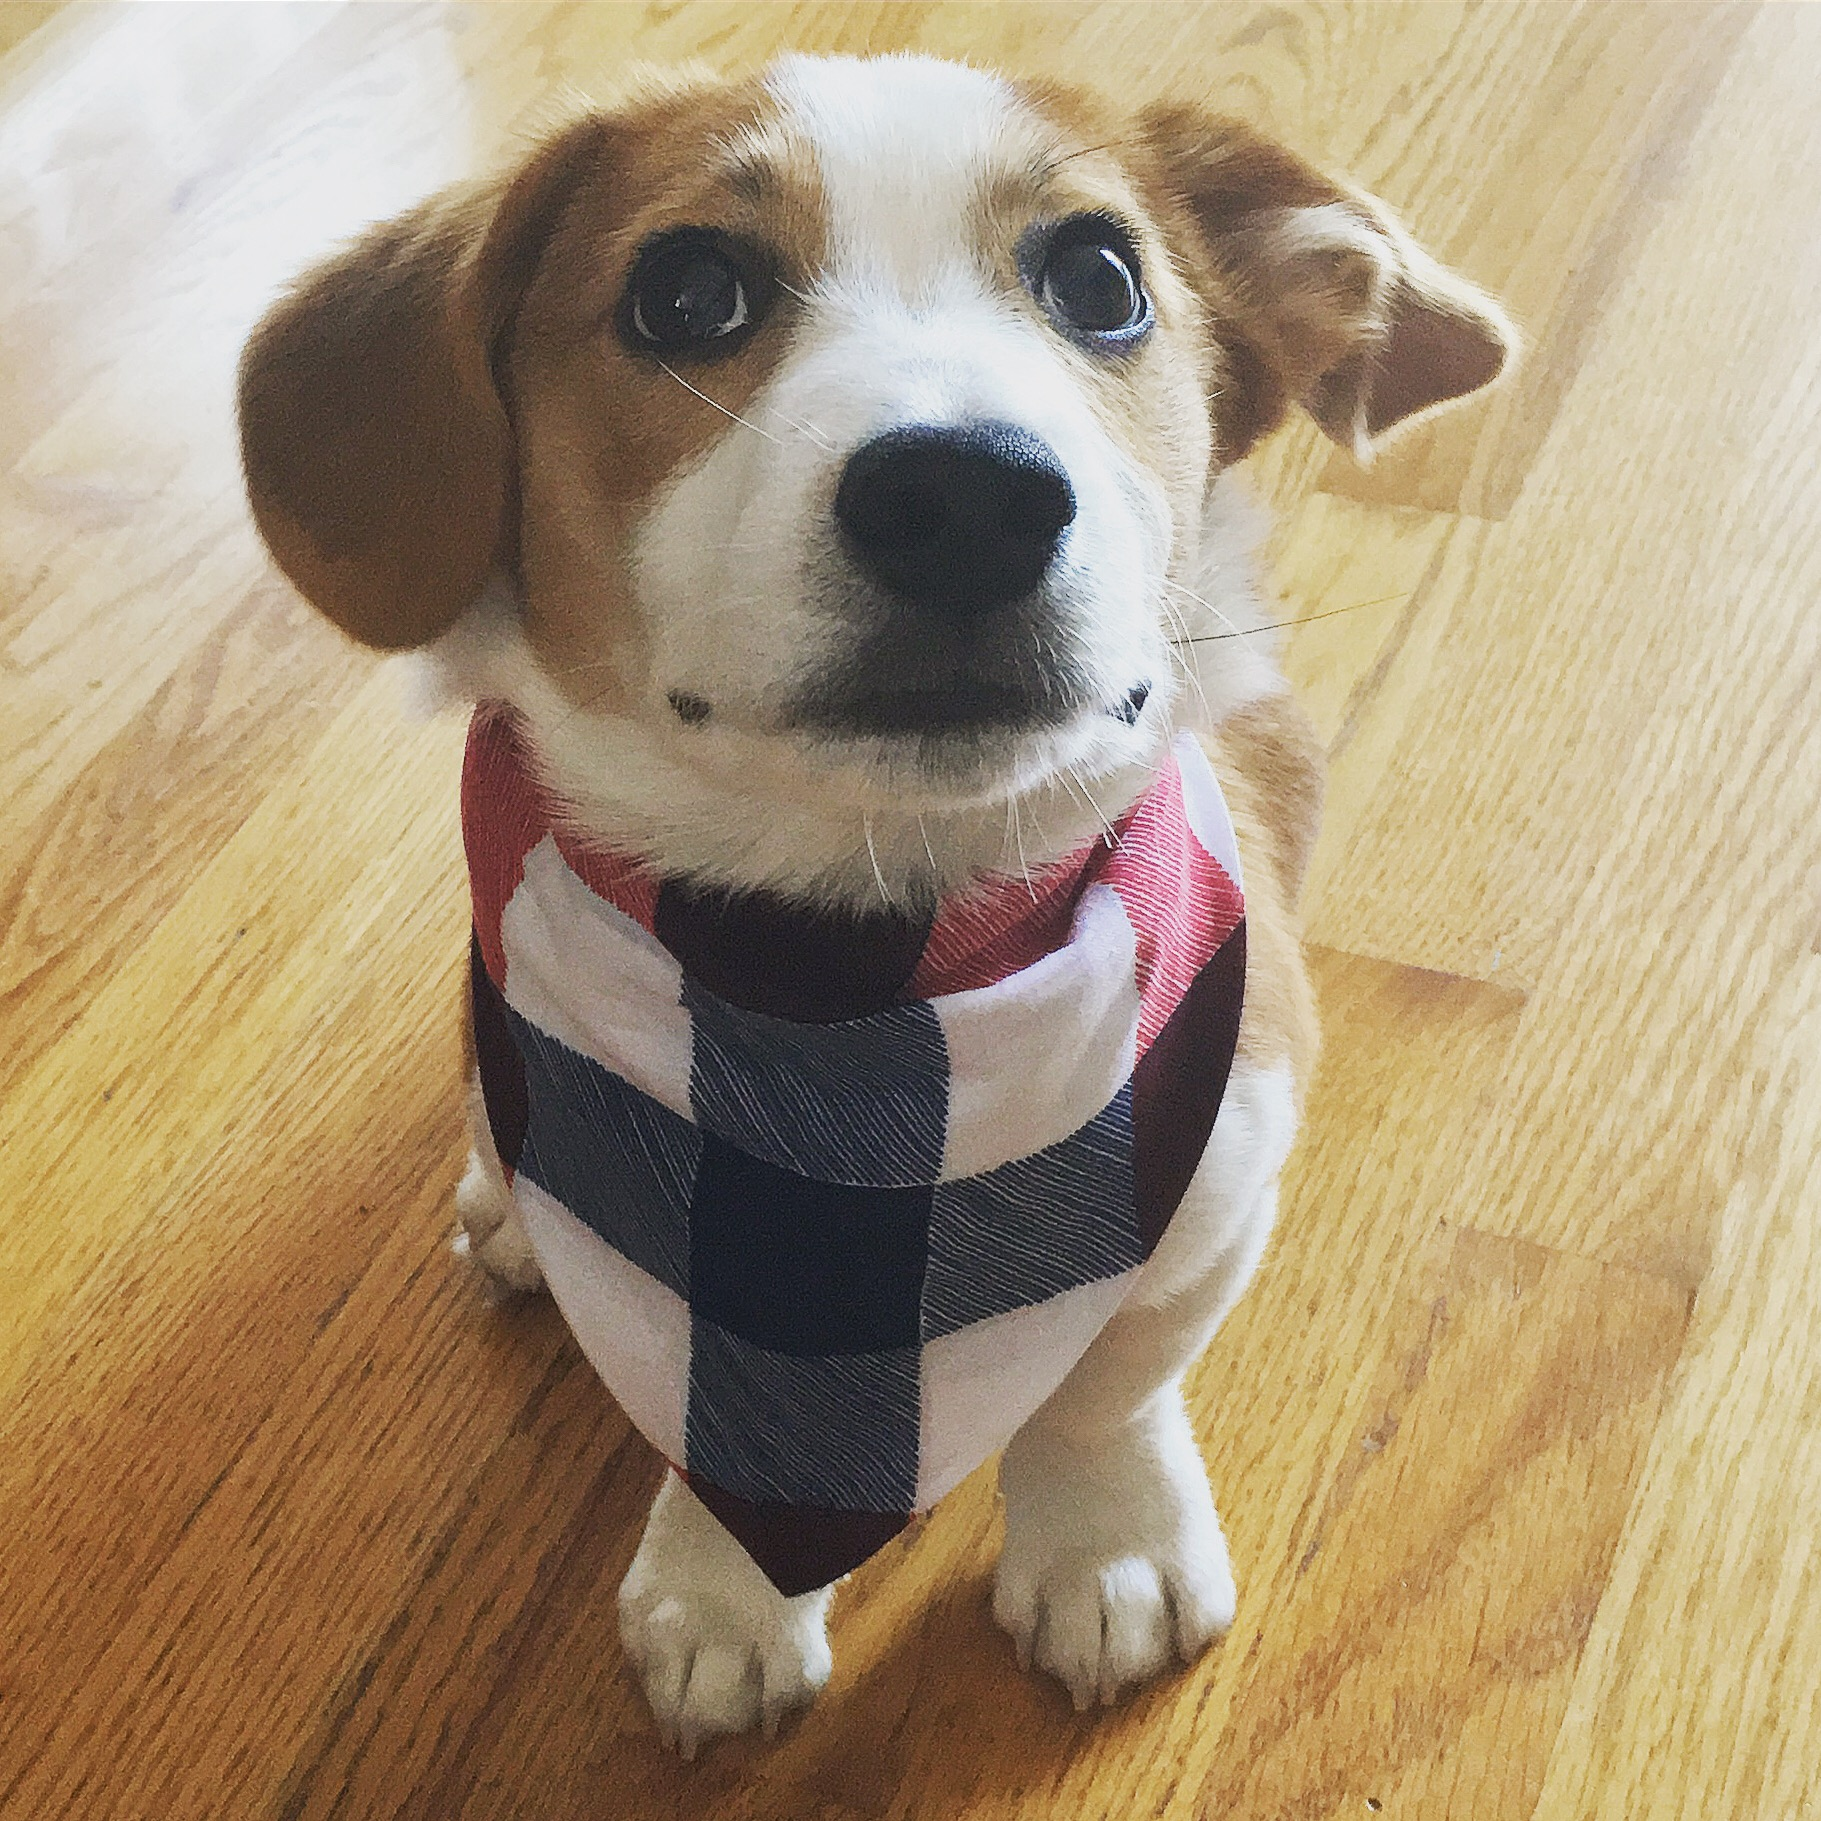 Butter wears a plaid scarf